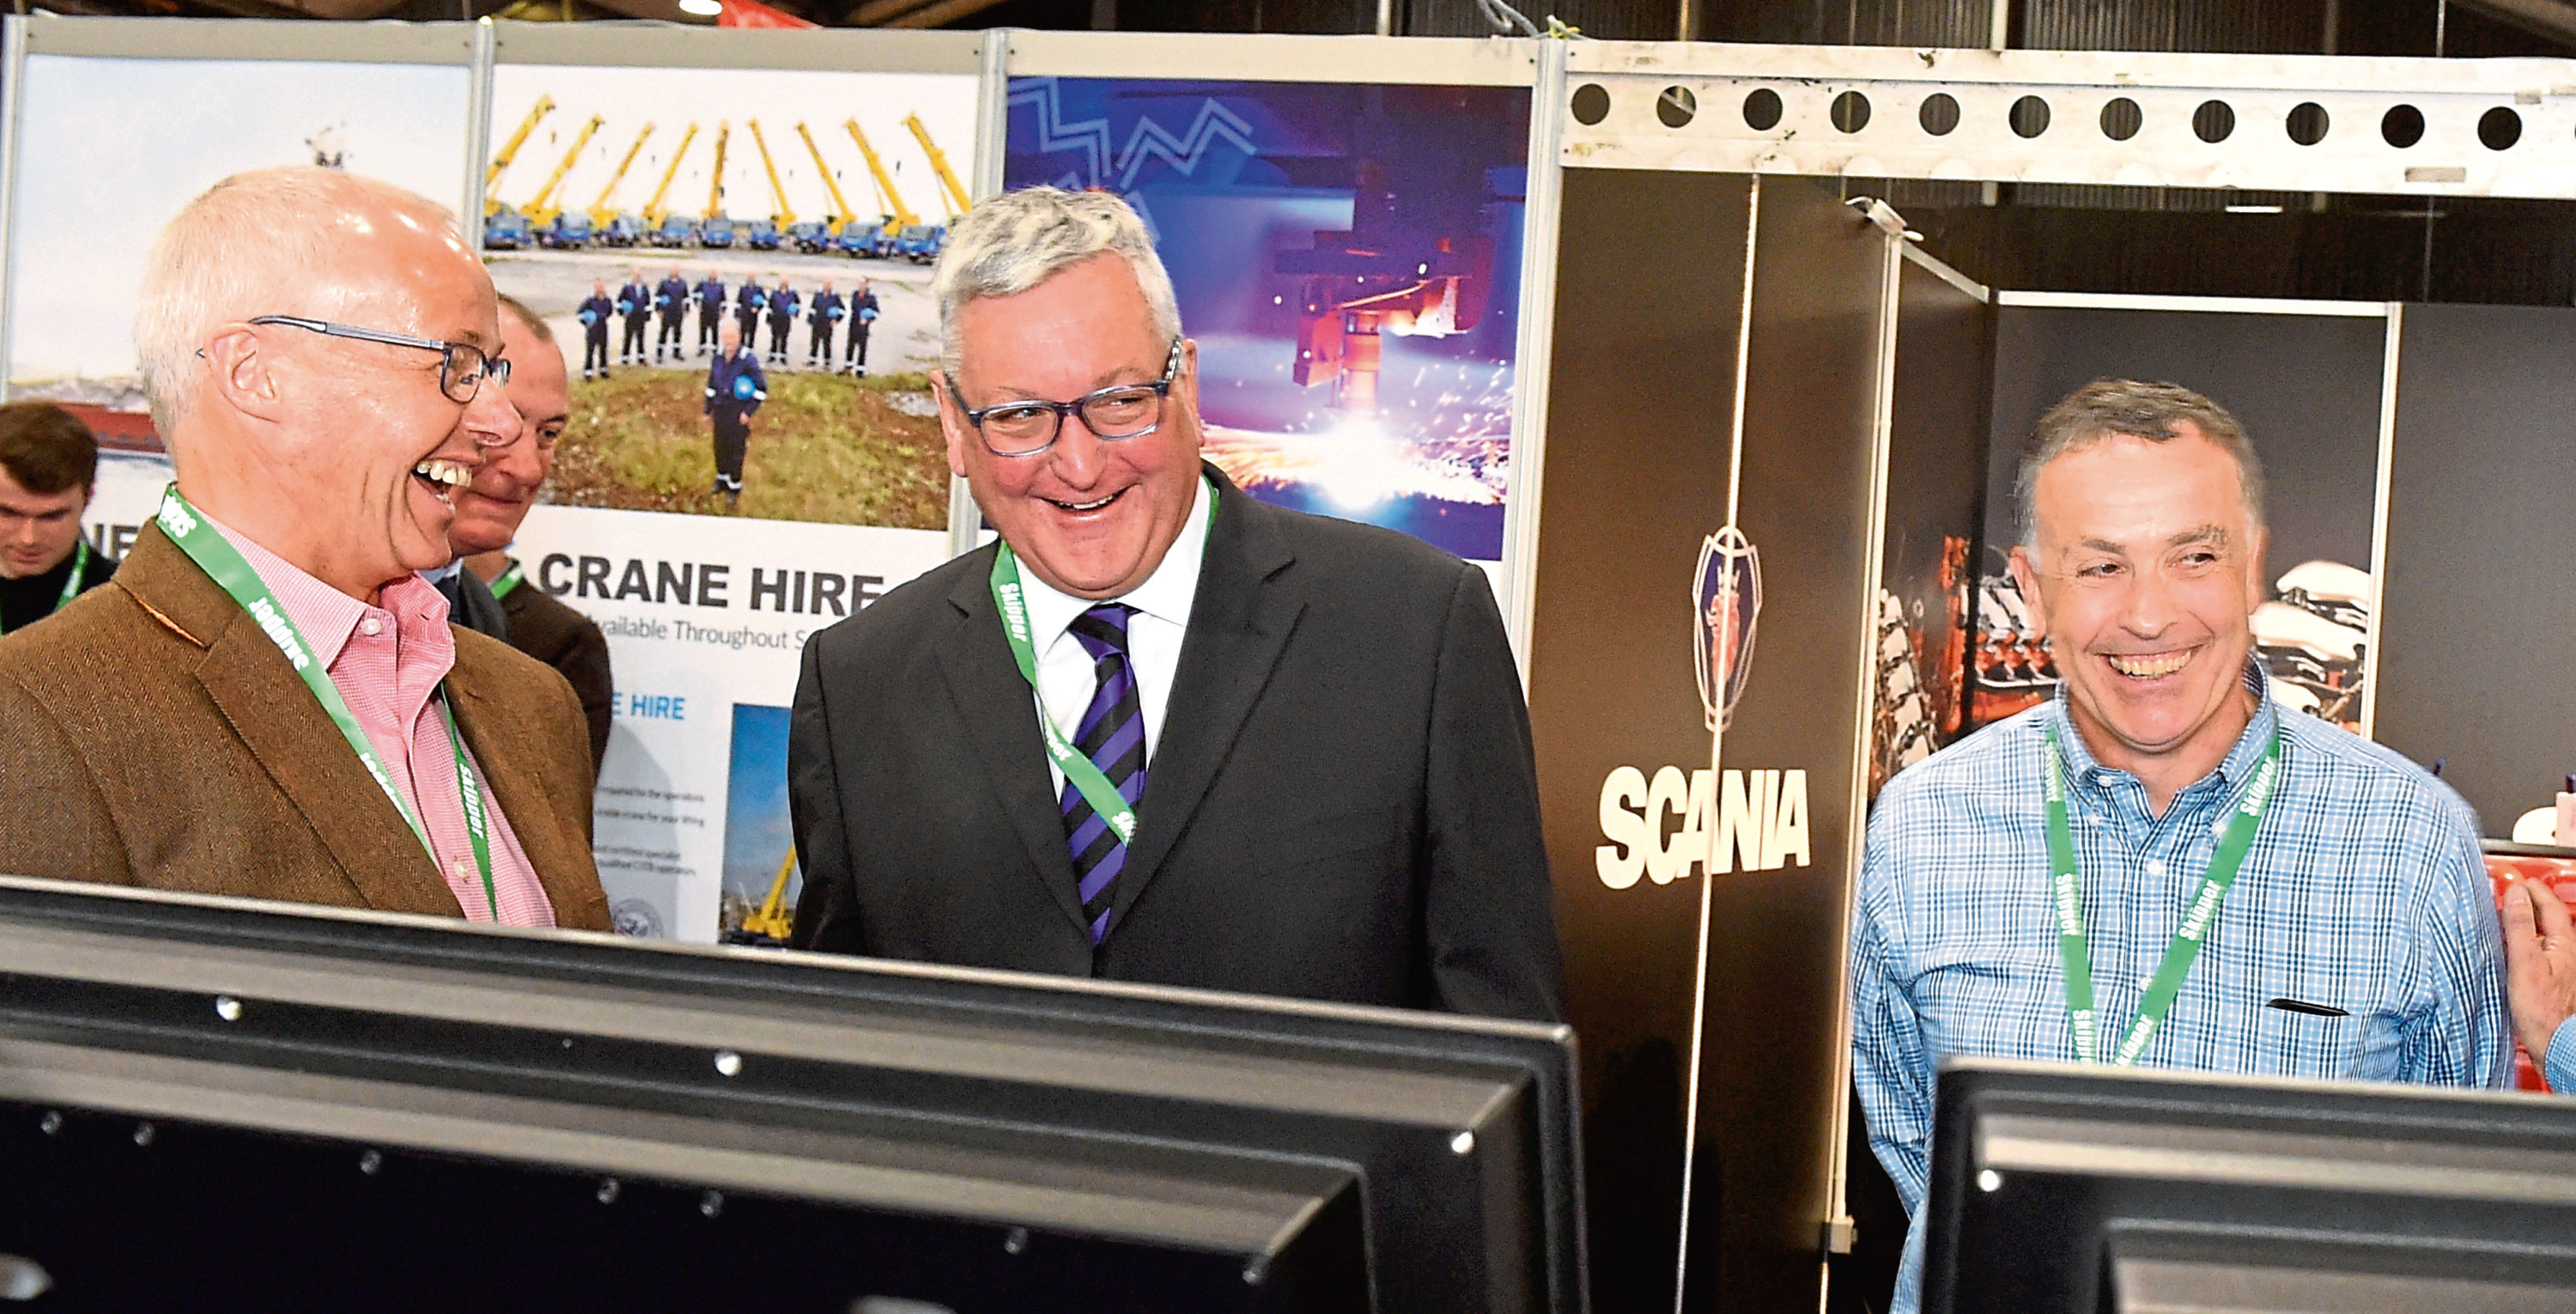 Ian Gatt, left, in a lighter moment with Fishing Minister Fergus Ewing at the AECC. Photograph by Jim Irvine